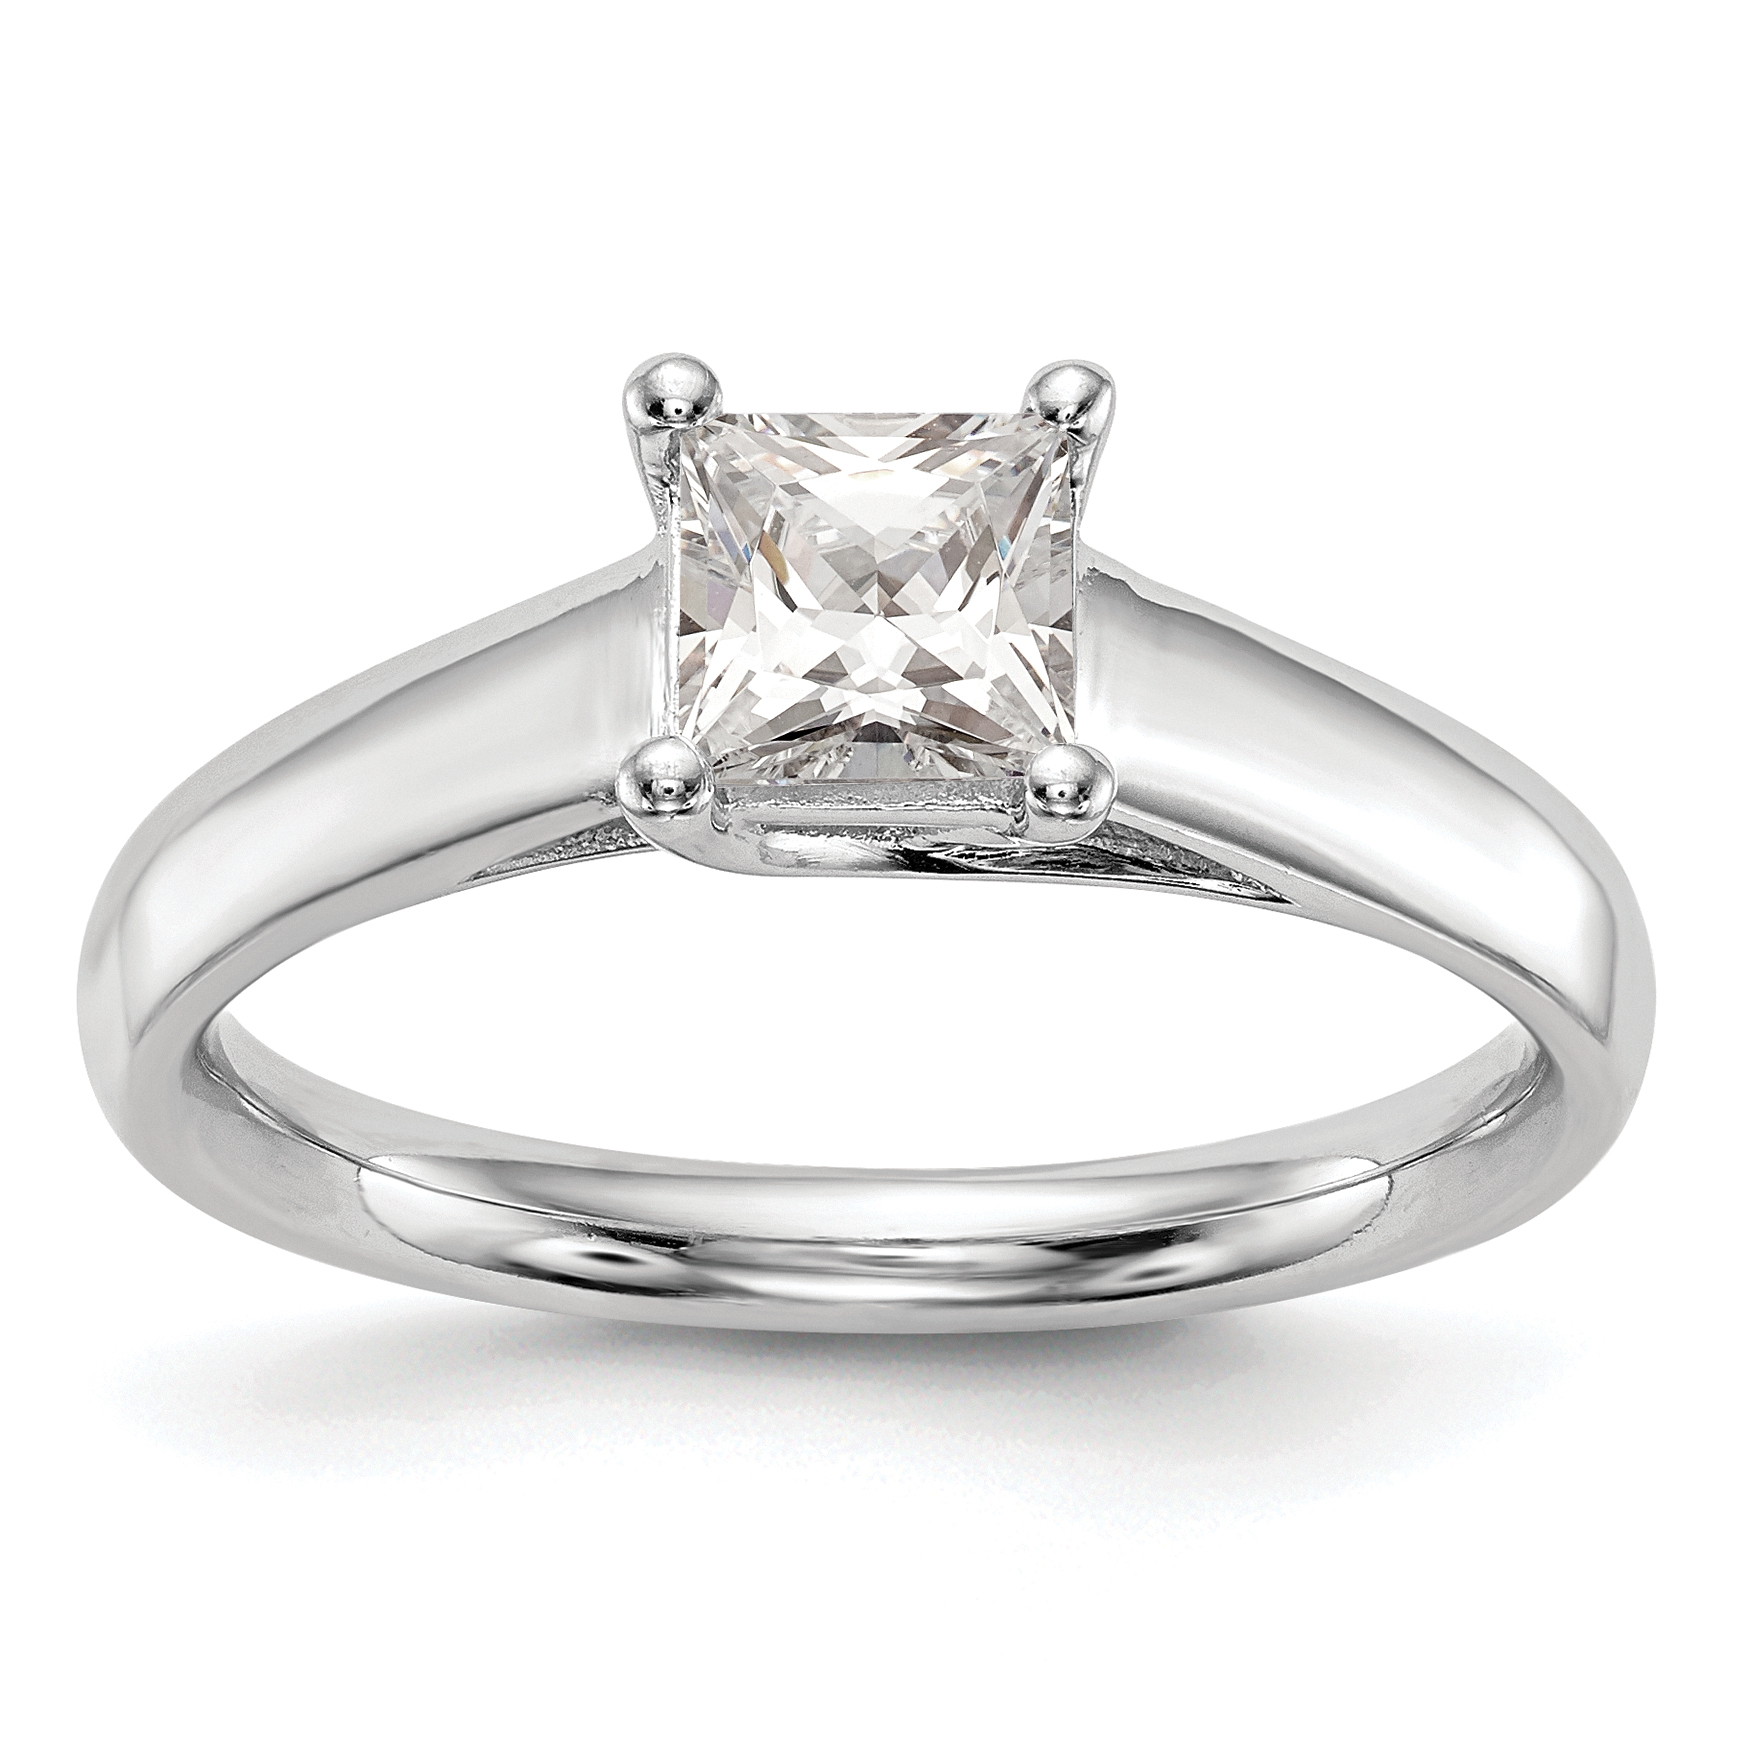 14k White Gold Square Solitaire Engagement Ring Mounting